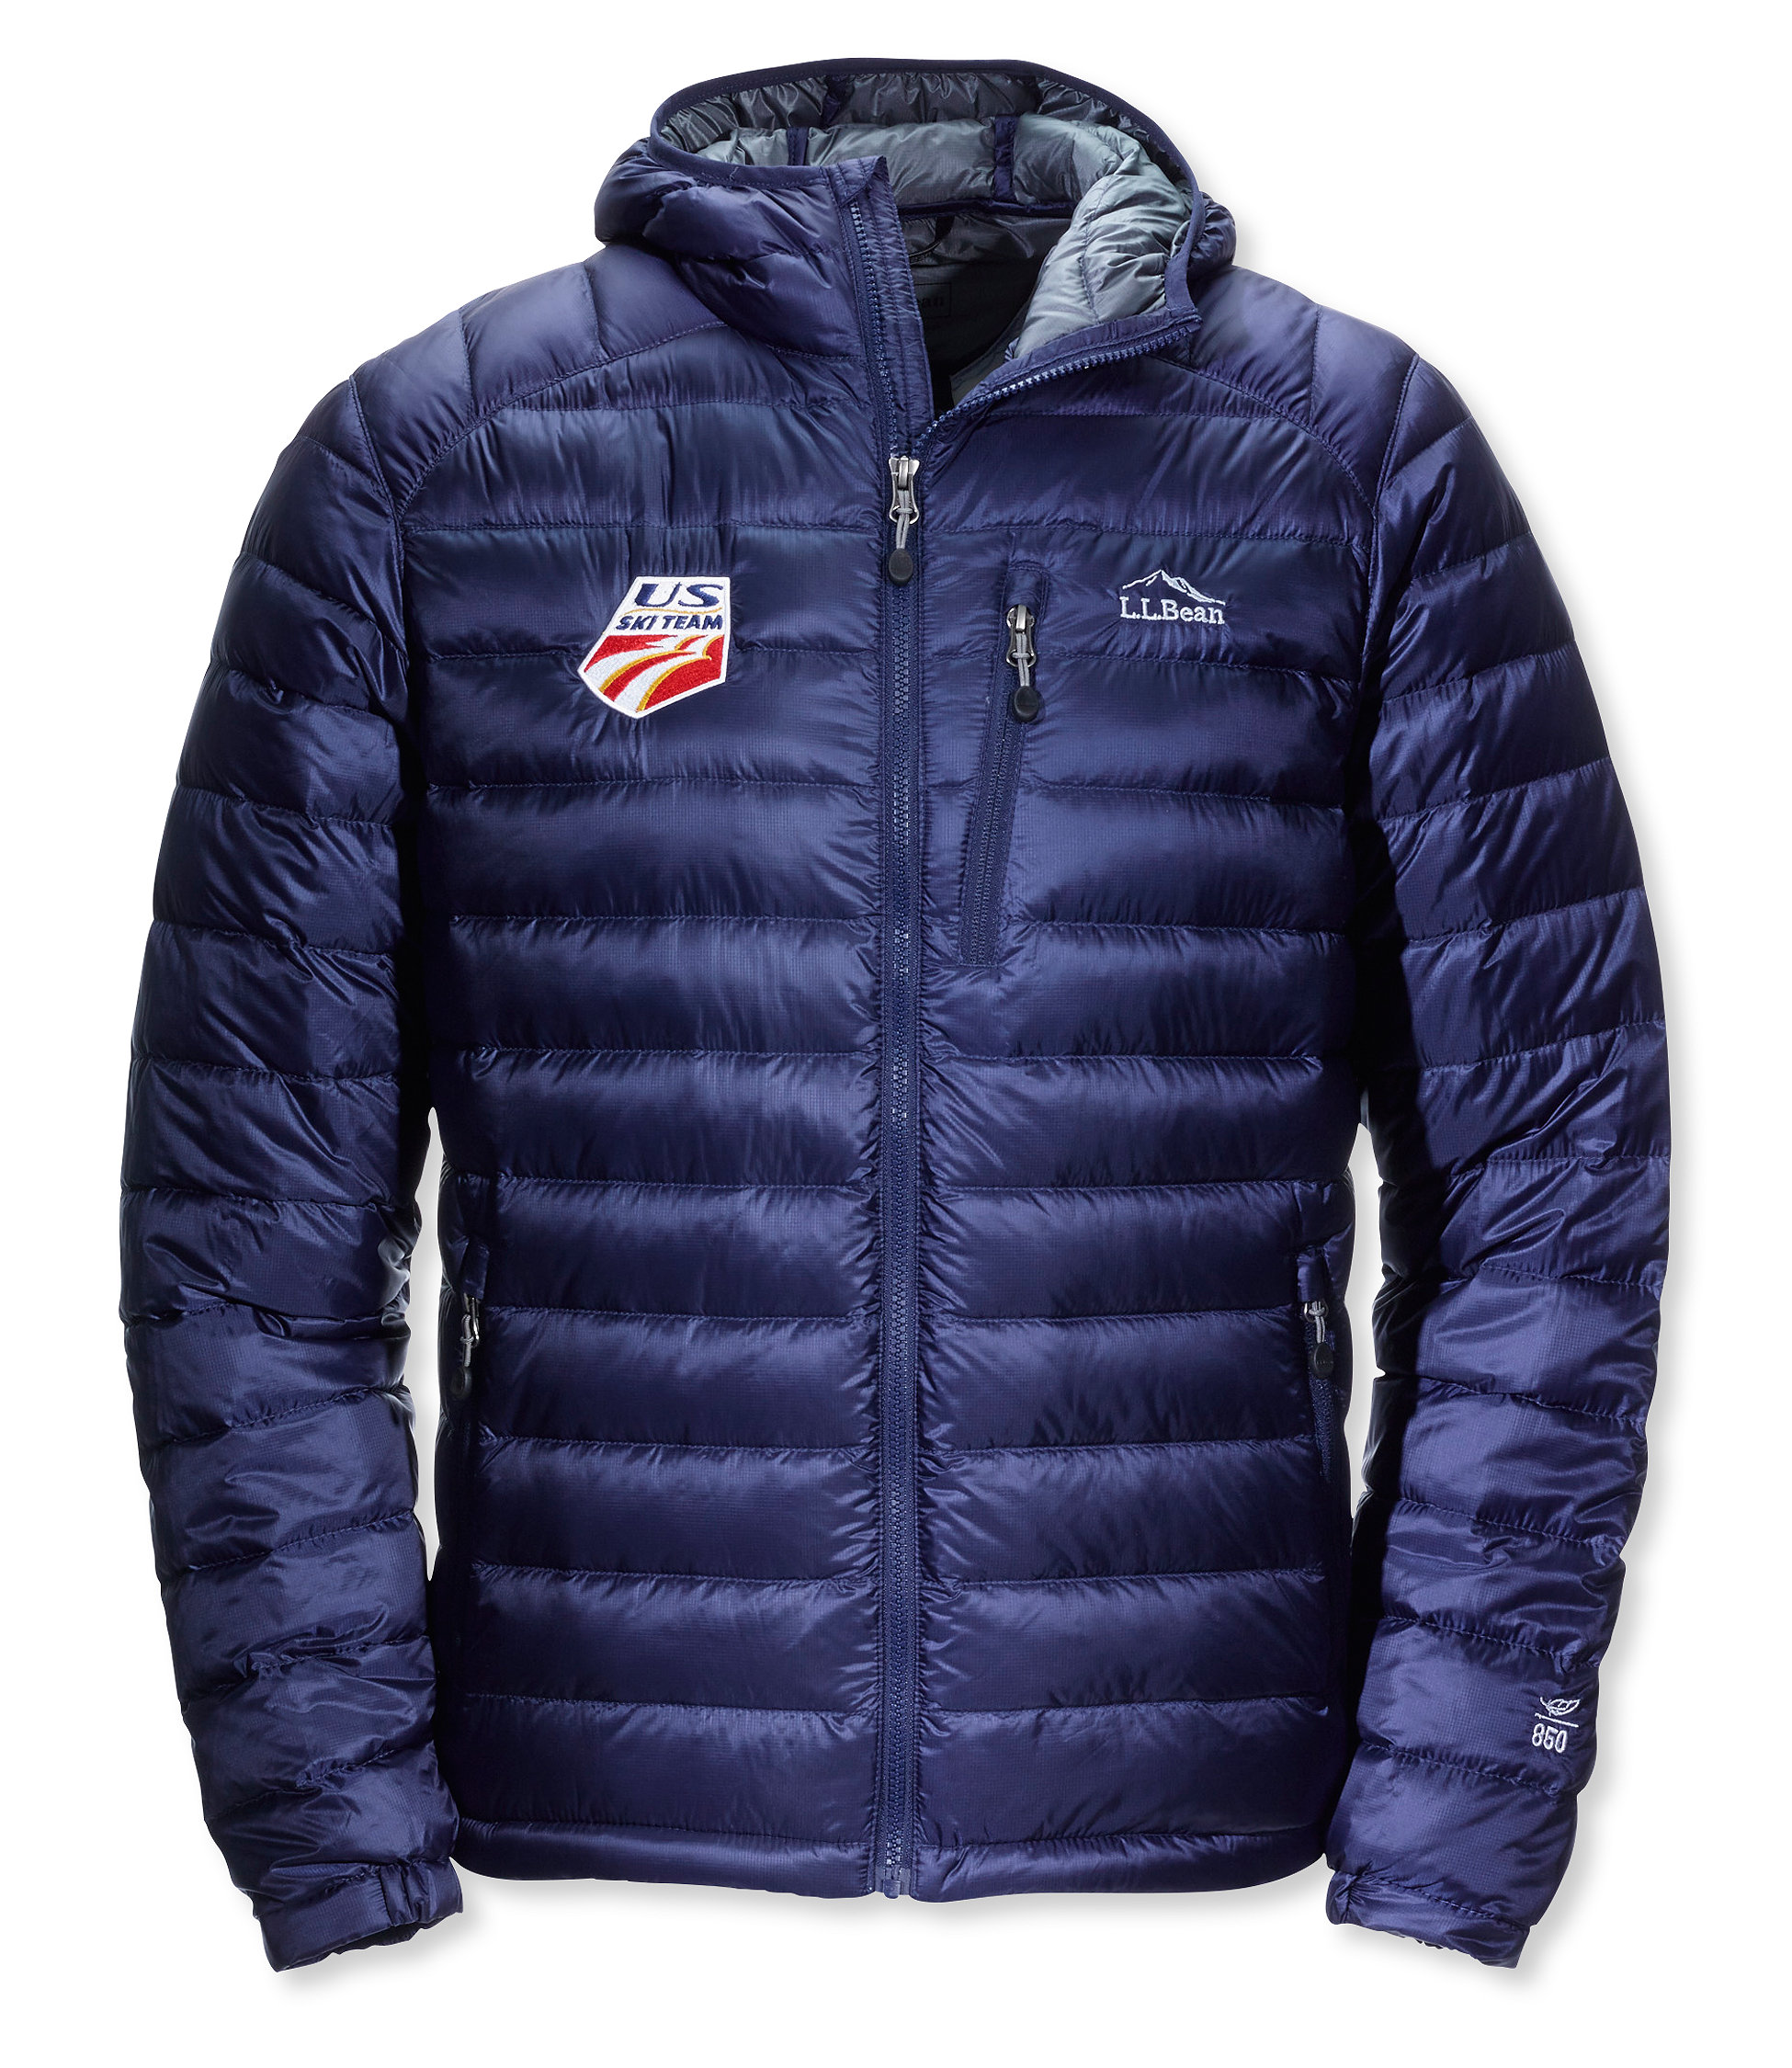 photo: L.L.Bean Ultralight 850 Down Hooded Jacket down insulated jacket